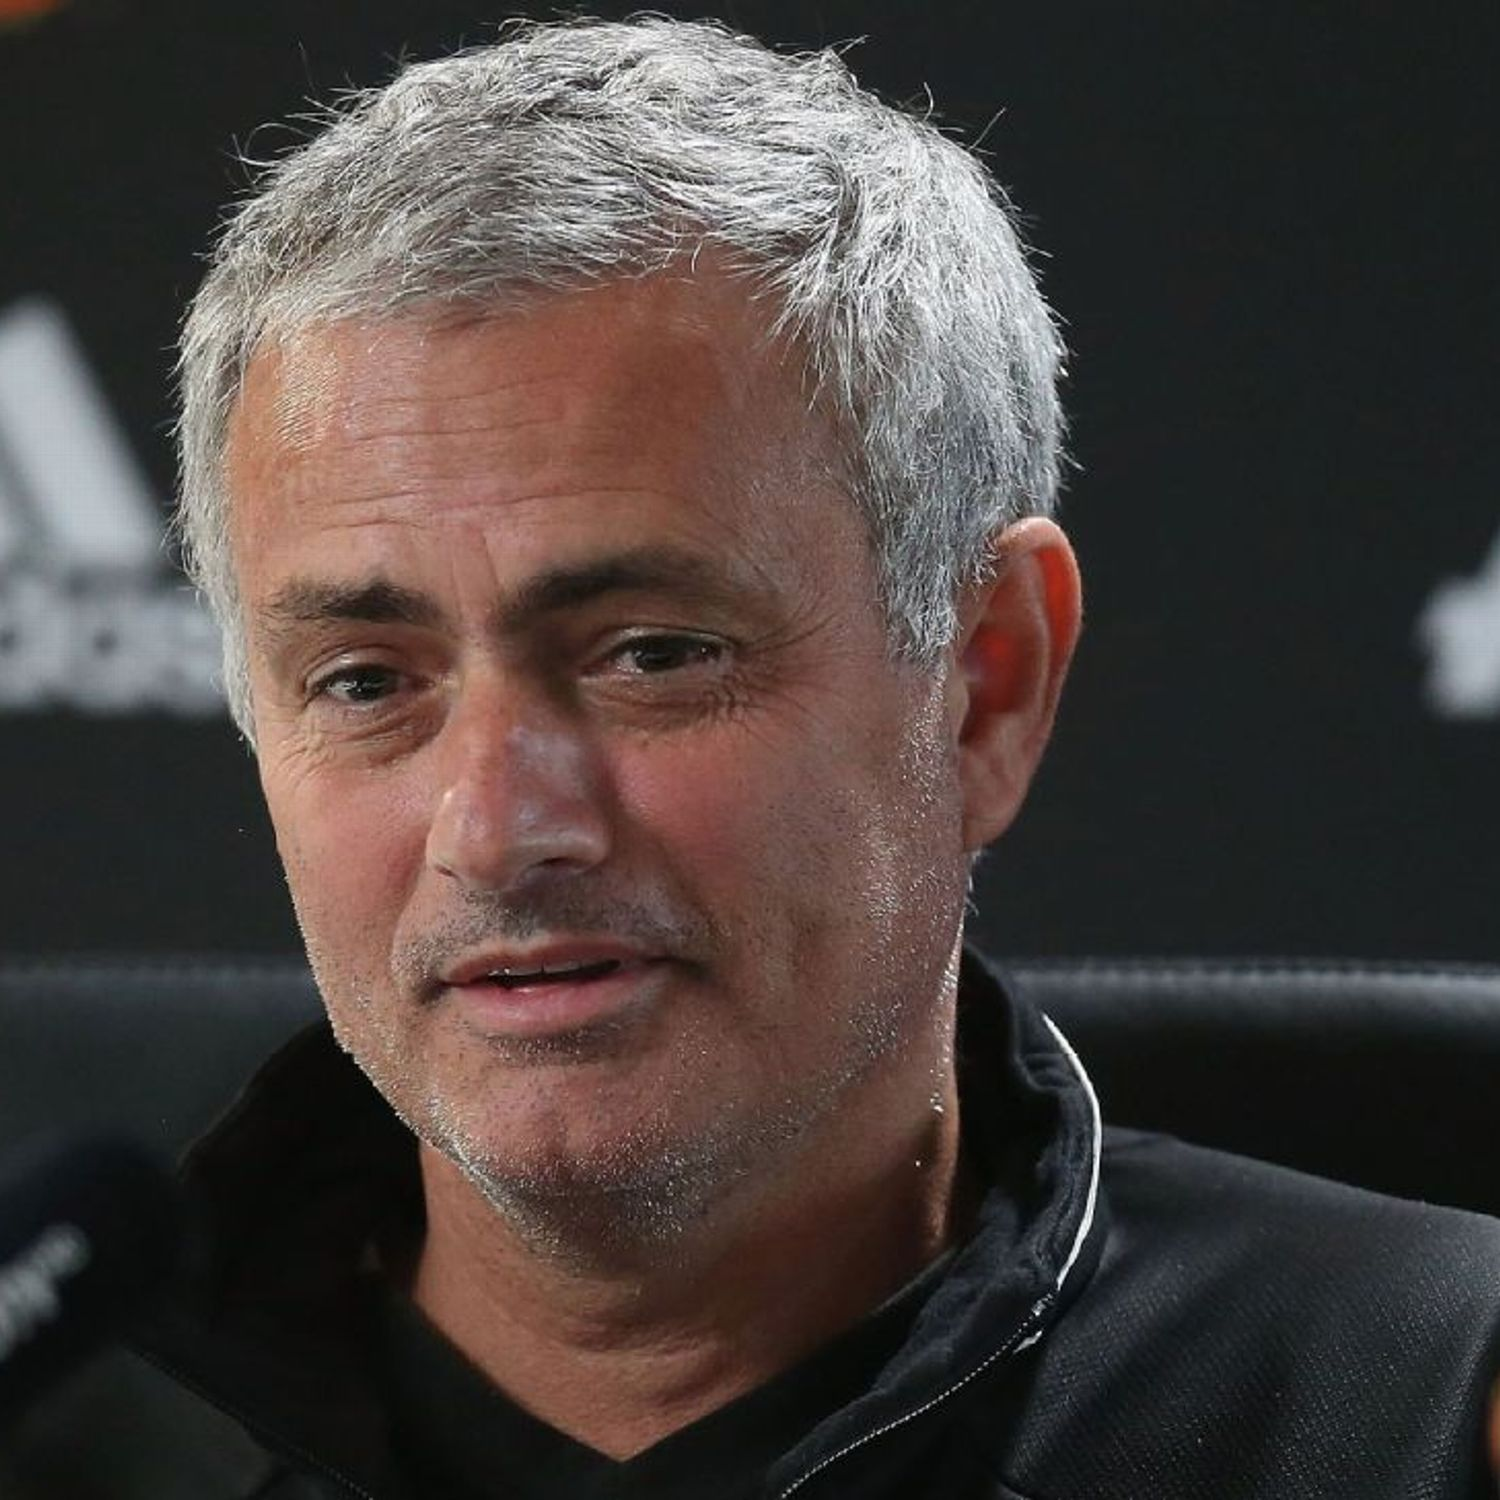 Liverpool are on a roll, but don't underestimate Mourinho at Anfield